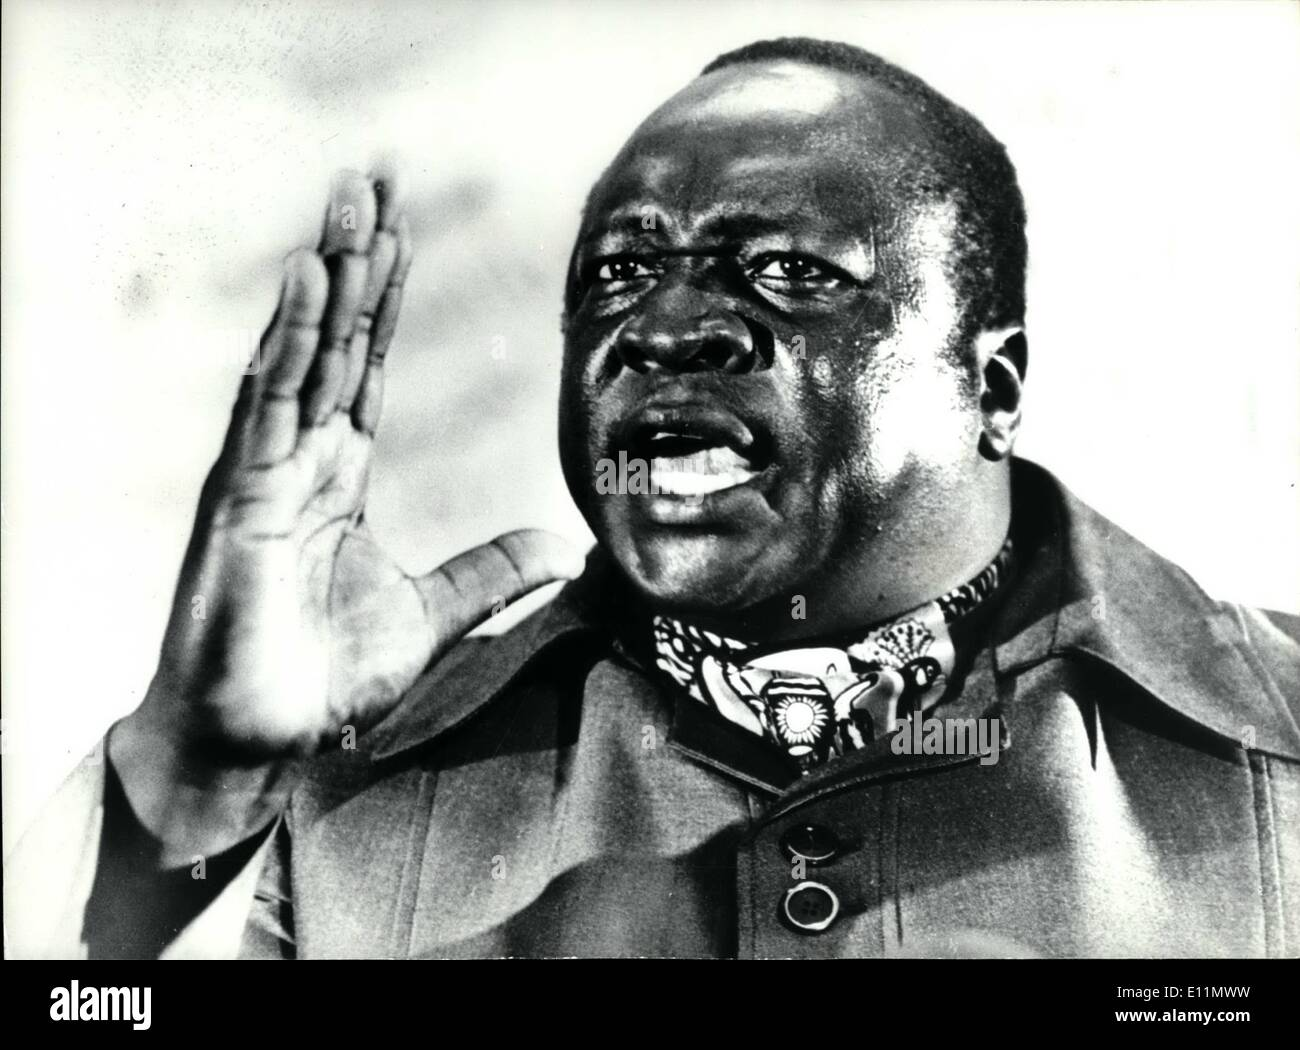 Mar. 03, 1979 - Invading tanks cut off Amin: It was reported today at President Amin and some of his Army Officers had been trapped in Entebbe by Tanzanian tanks. The tanks are said to control the road to the Ugandan capital of Kampala 21 miles away. Photo Shows President Amin who is said to be planning a counter-attack against the invaders. - Stock Image